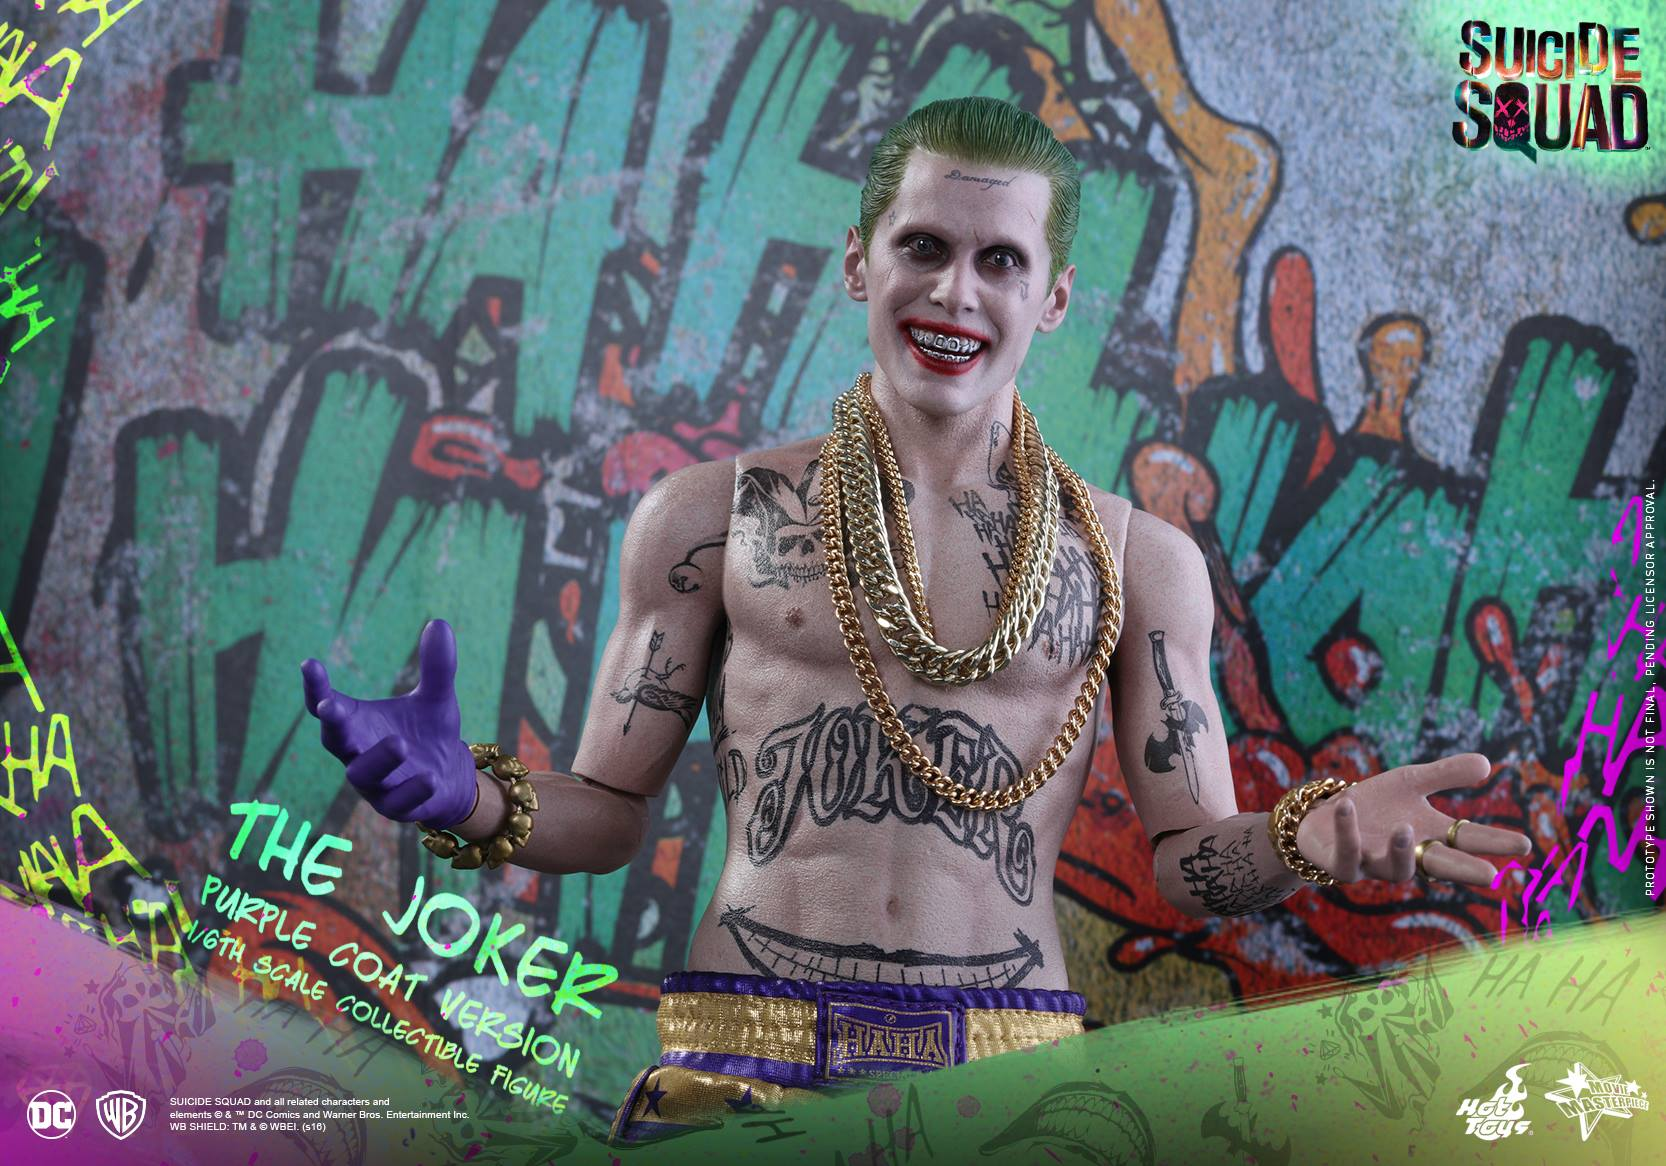 Suicide Squad Hot Toys - Joker (Purple Suit)